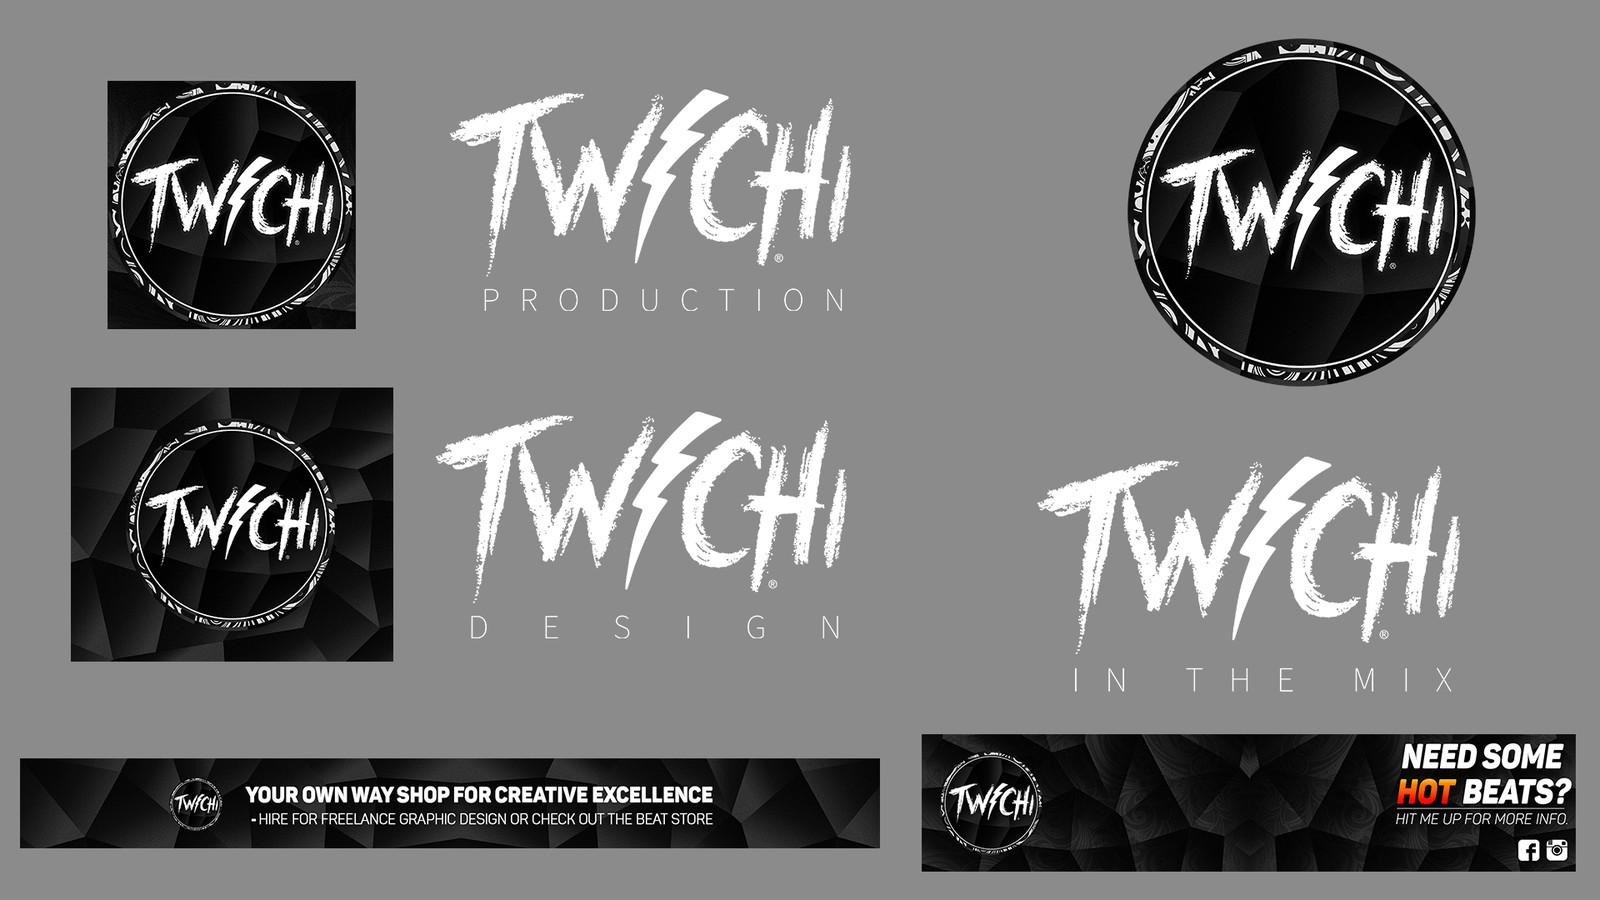 Twichi Design ART